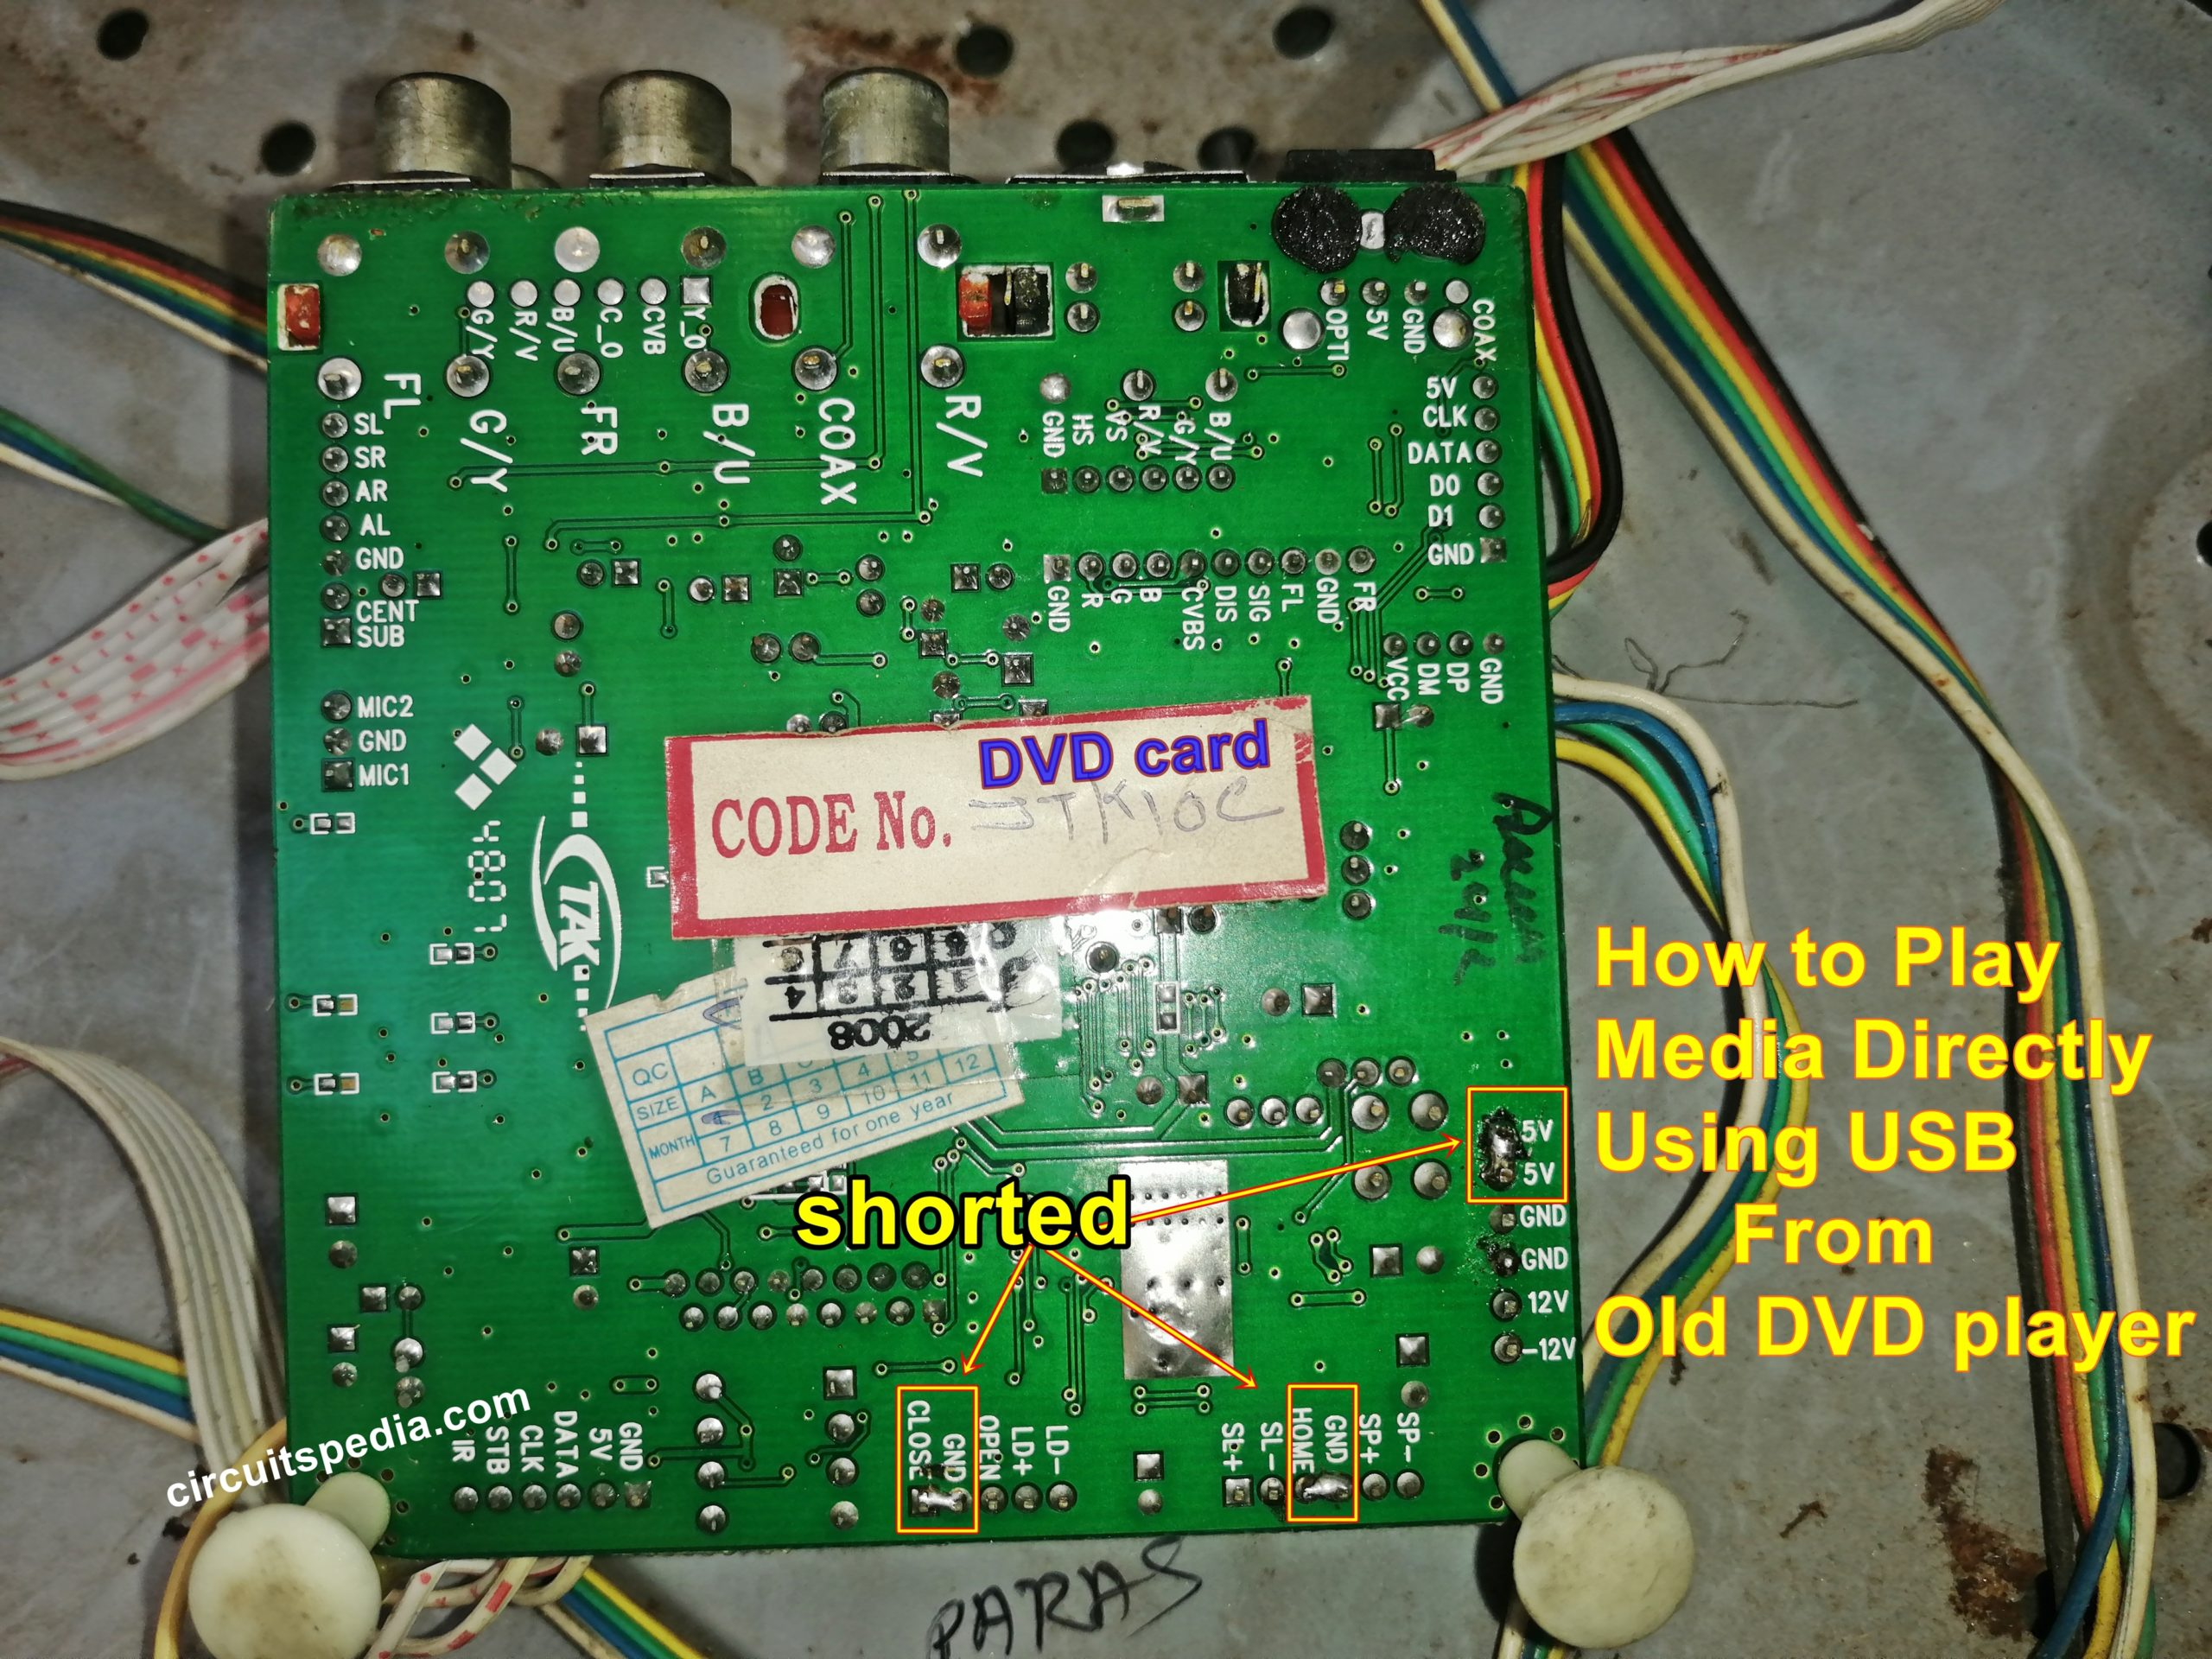 convert old dvd player to usb